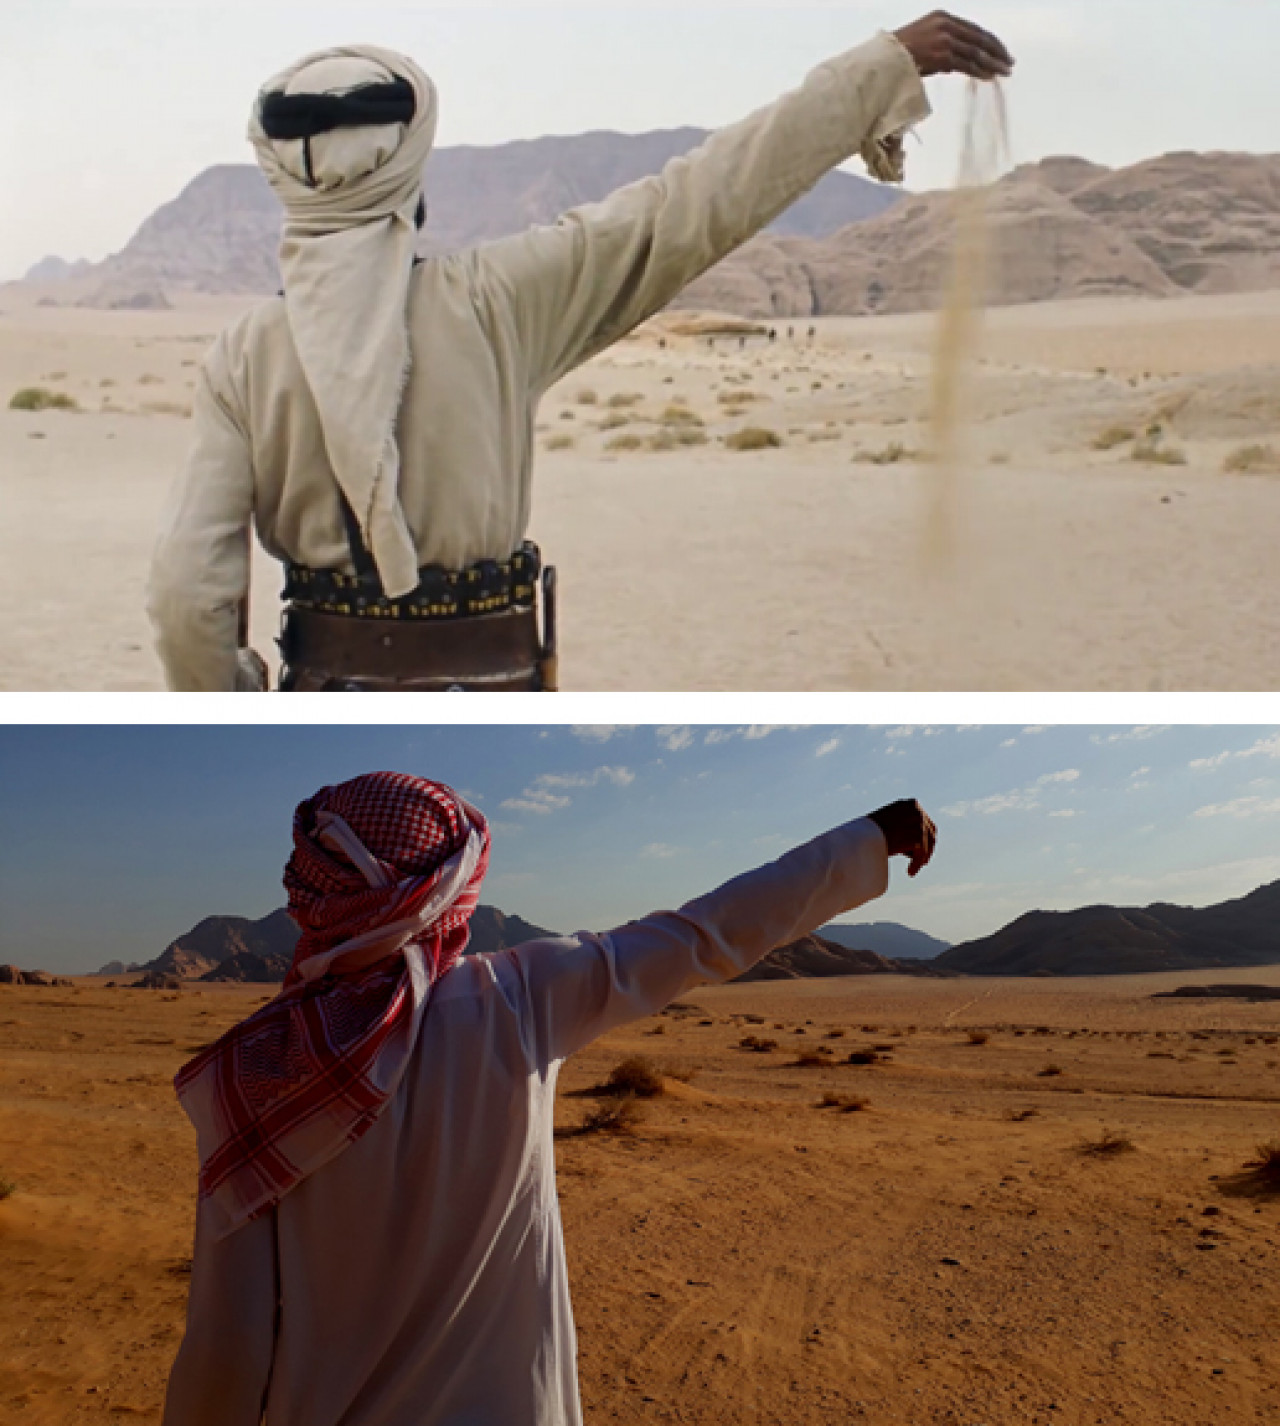 Recreating a scene from Theeb (top: movie scene / bottom: Huseen on location).